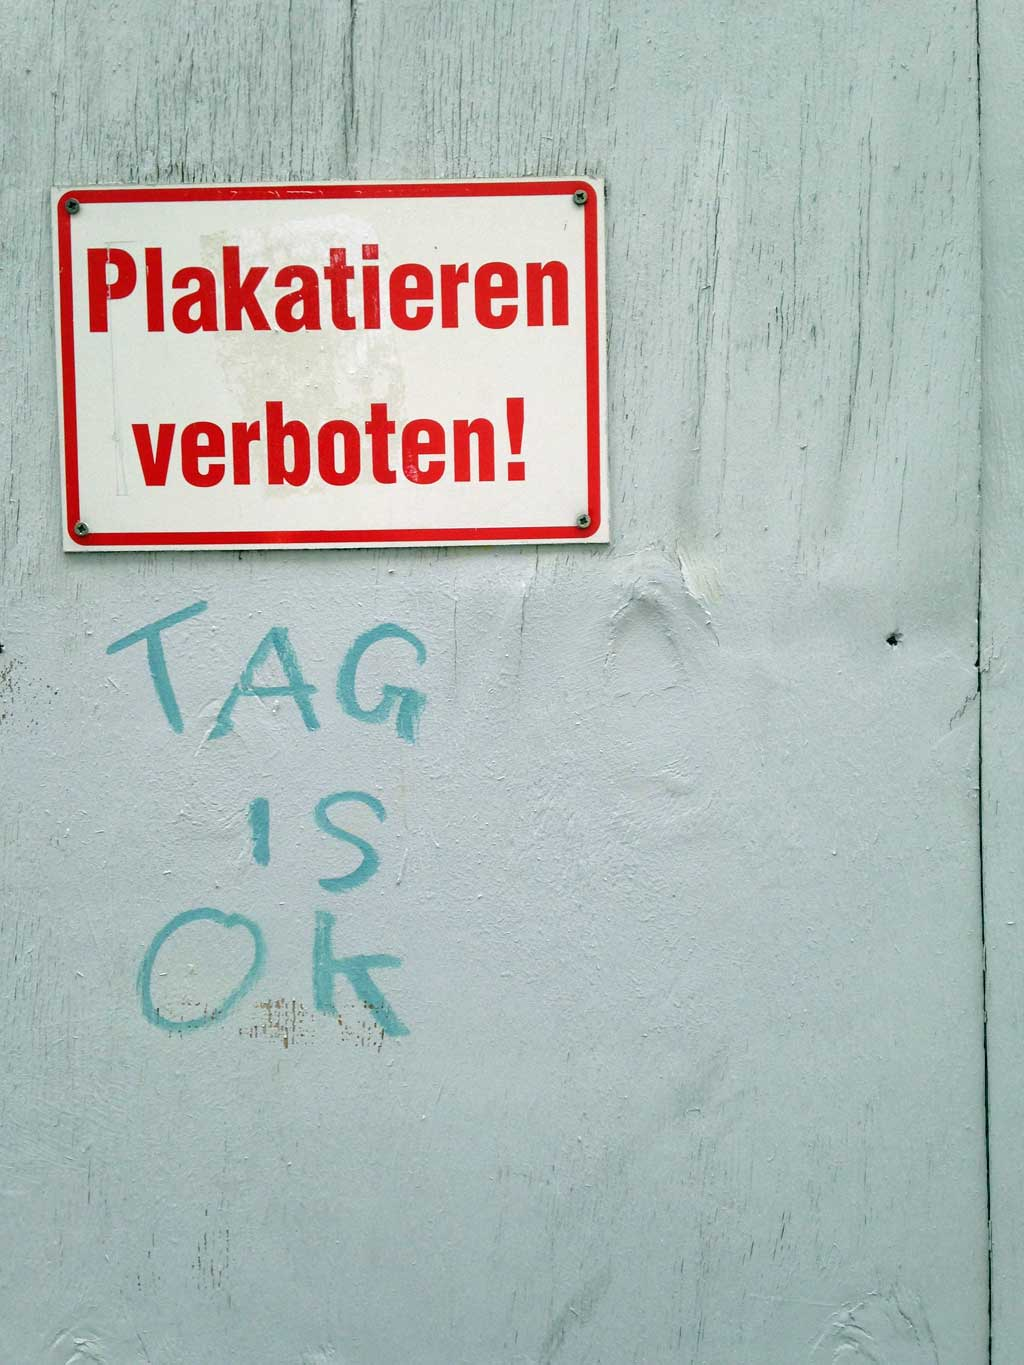 Plakatieren verboten - Tag is OK